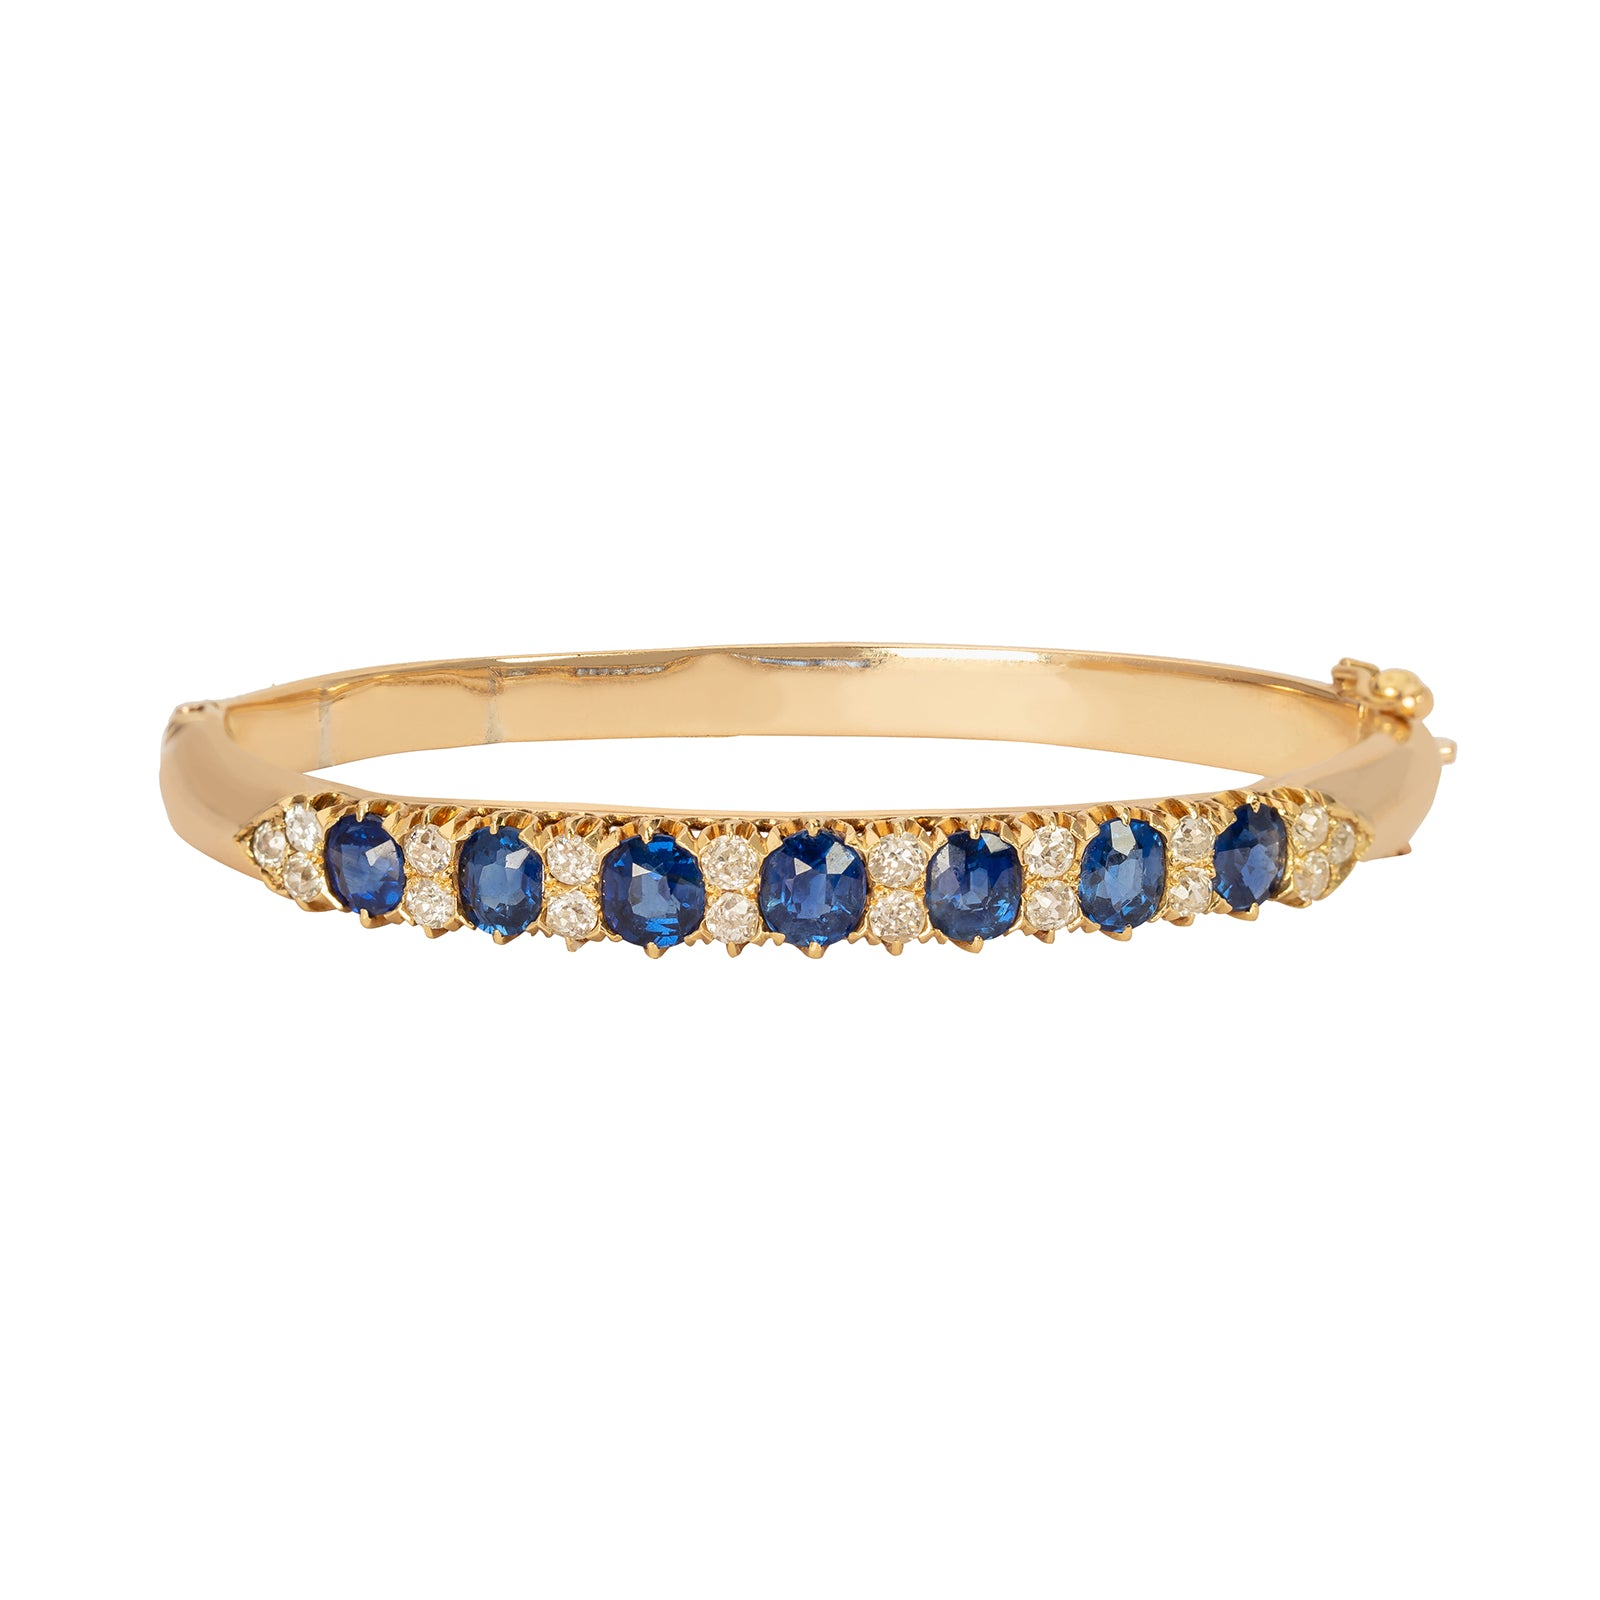 Jenna Blake Cuff Bracelet - Blue Sapphire - Bracelets - Broken English Jewelry